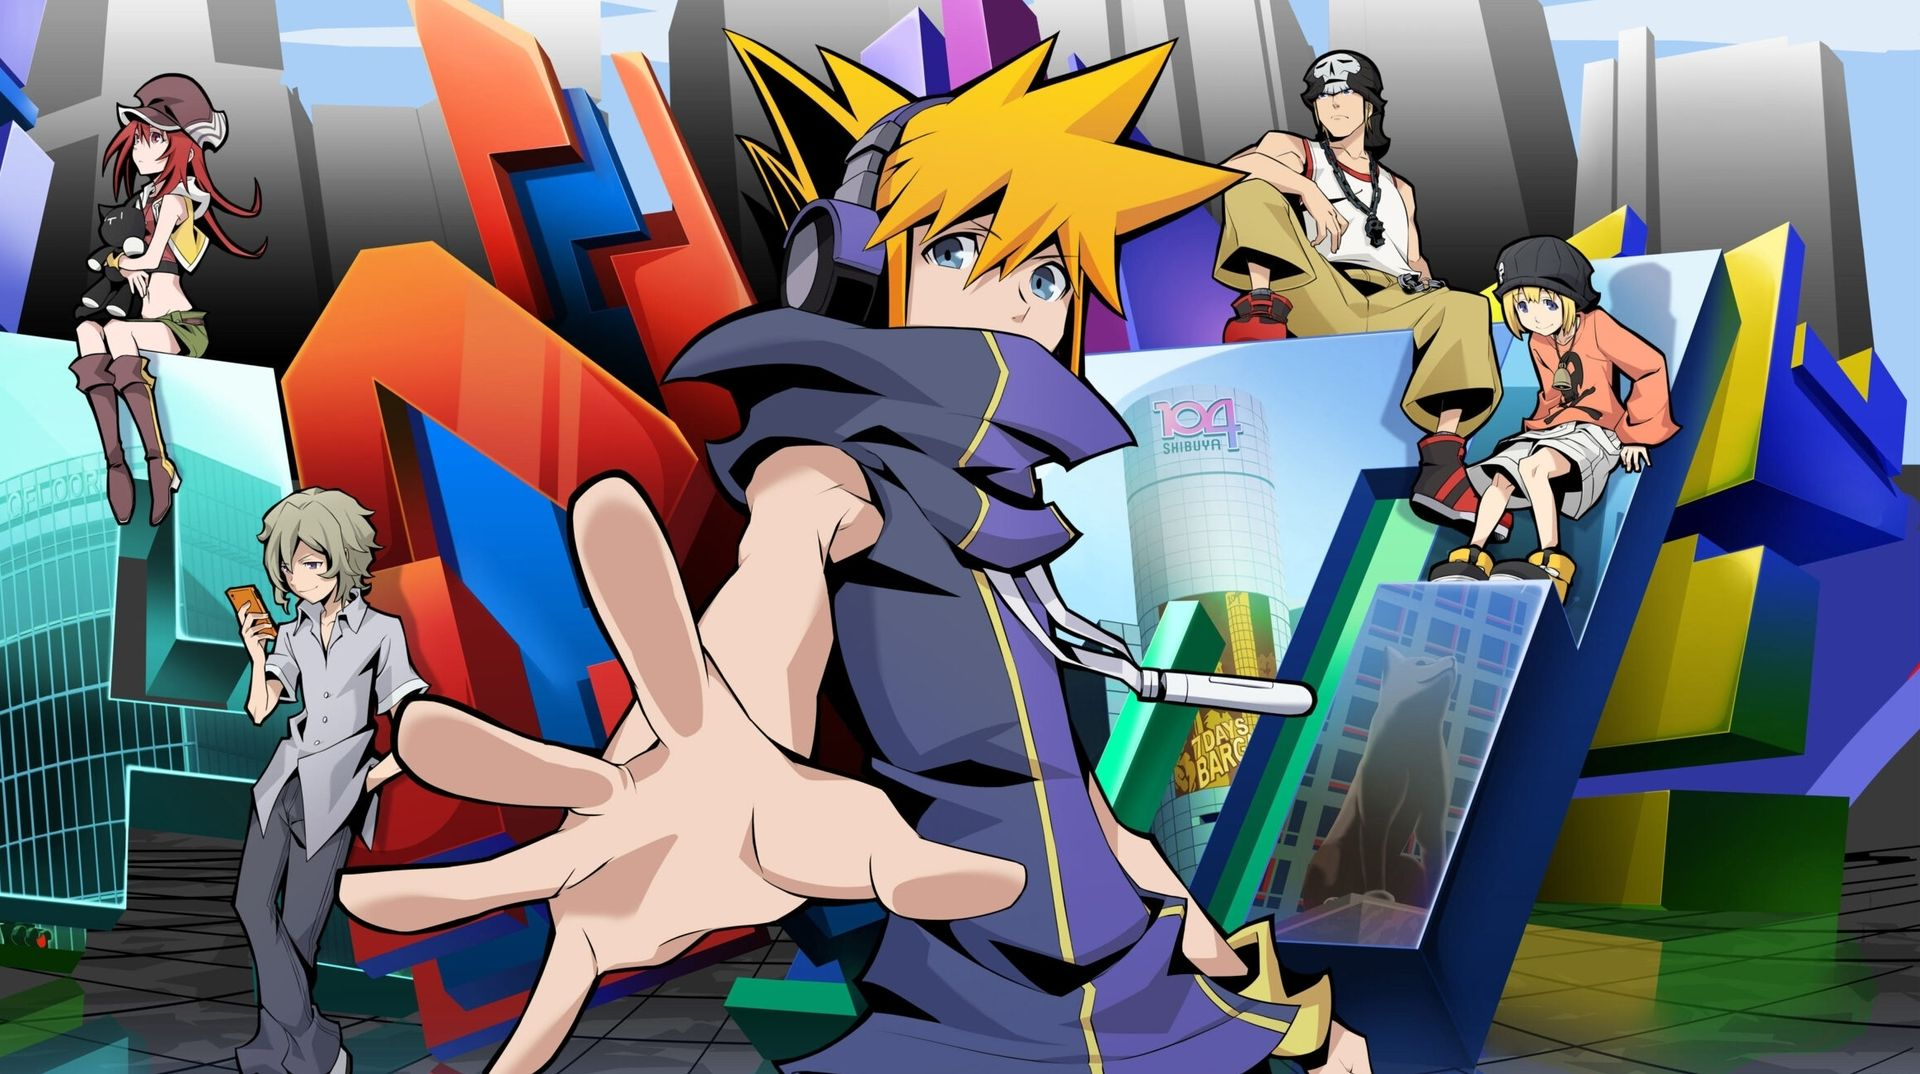 Most Anticipated Spring 2021 Anime - The World Ends with You Anime